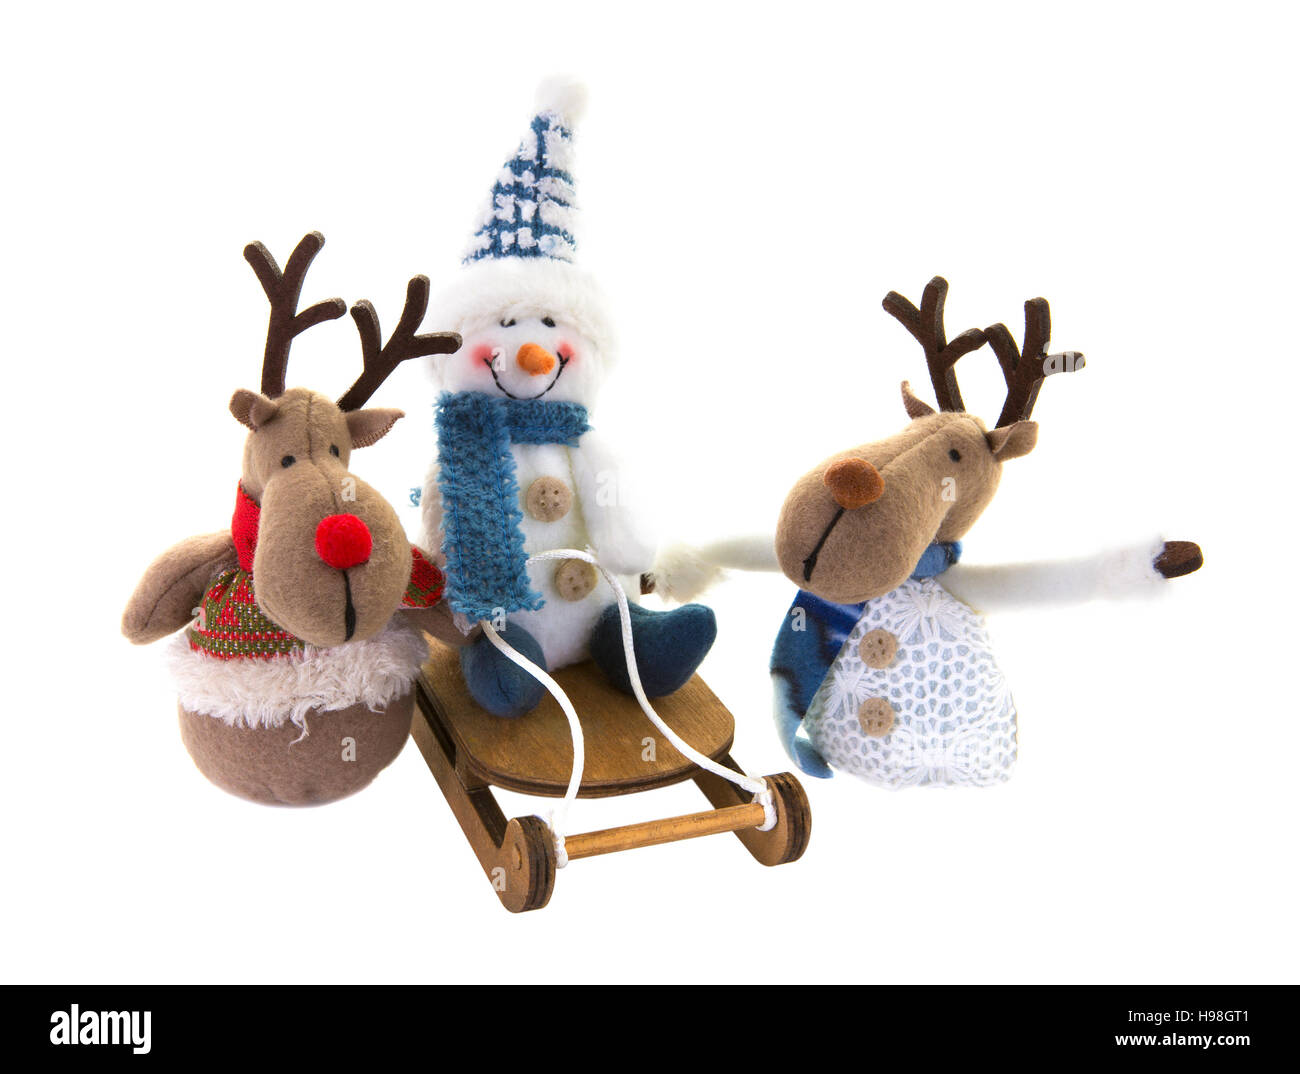 Snowman on a sledge with reindeer on a white background. - Stock Image